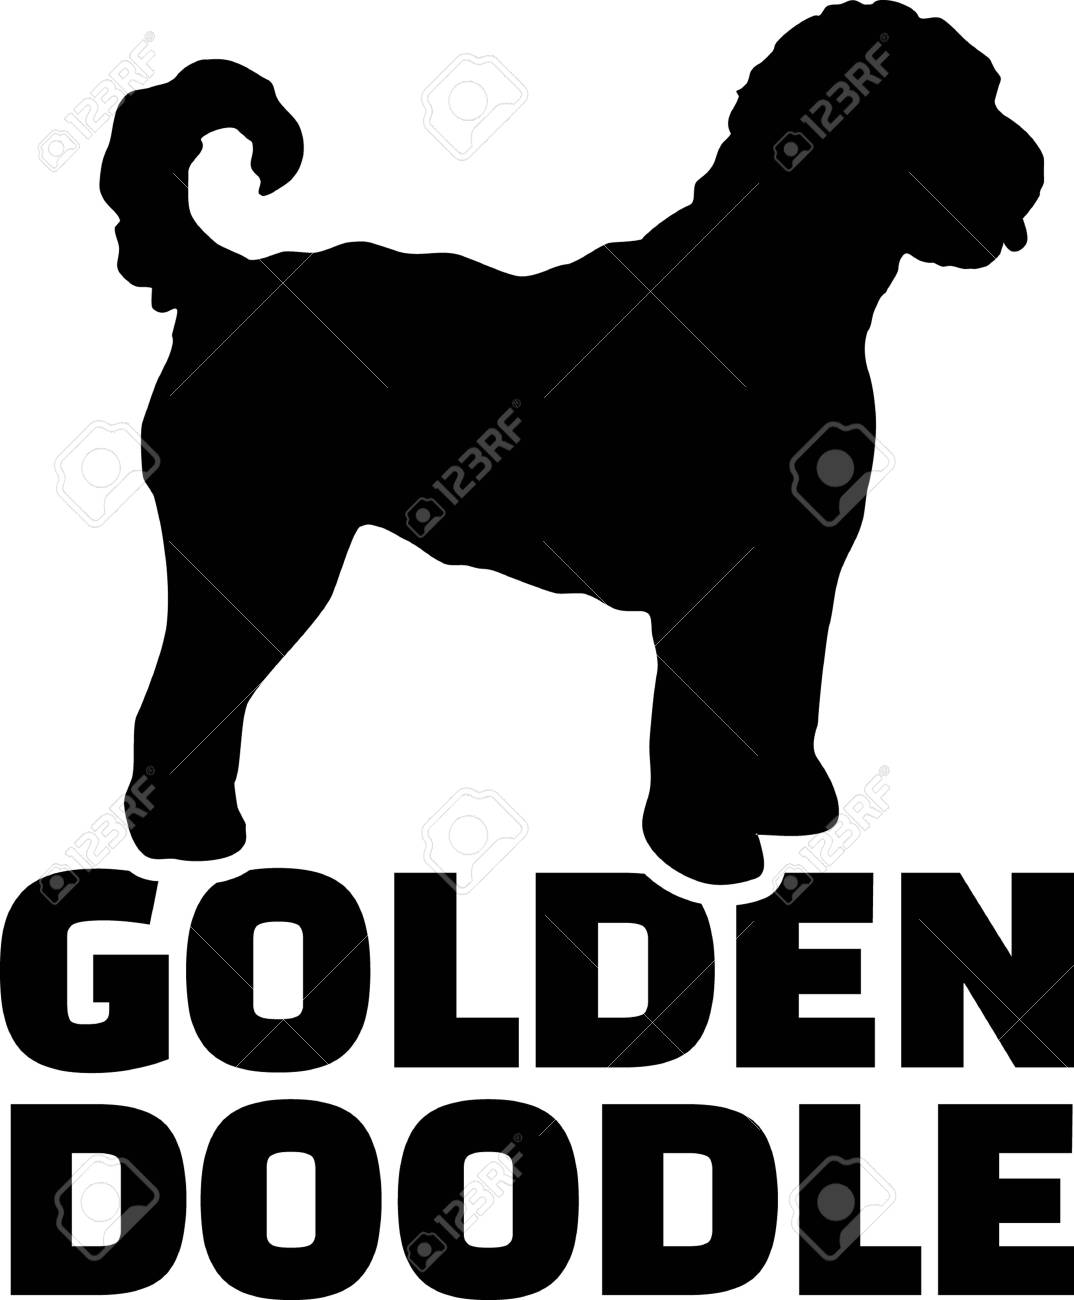 Goldendoodle silhouette real word in black.